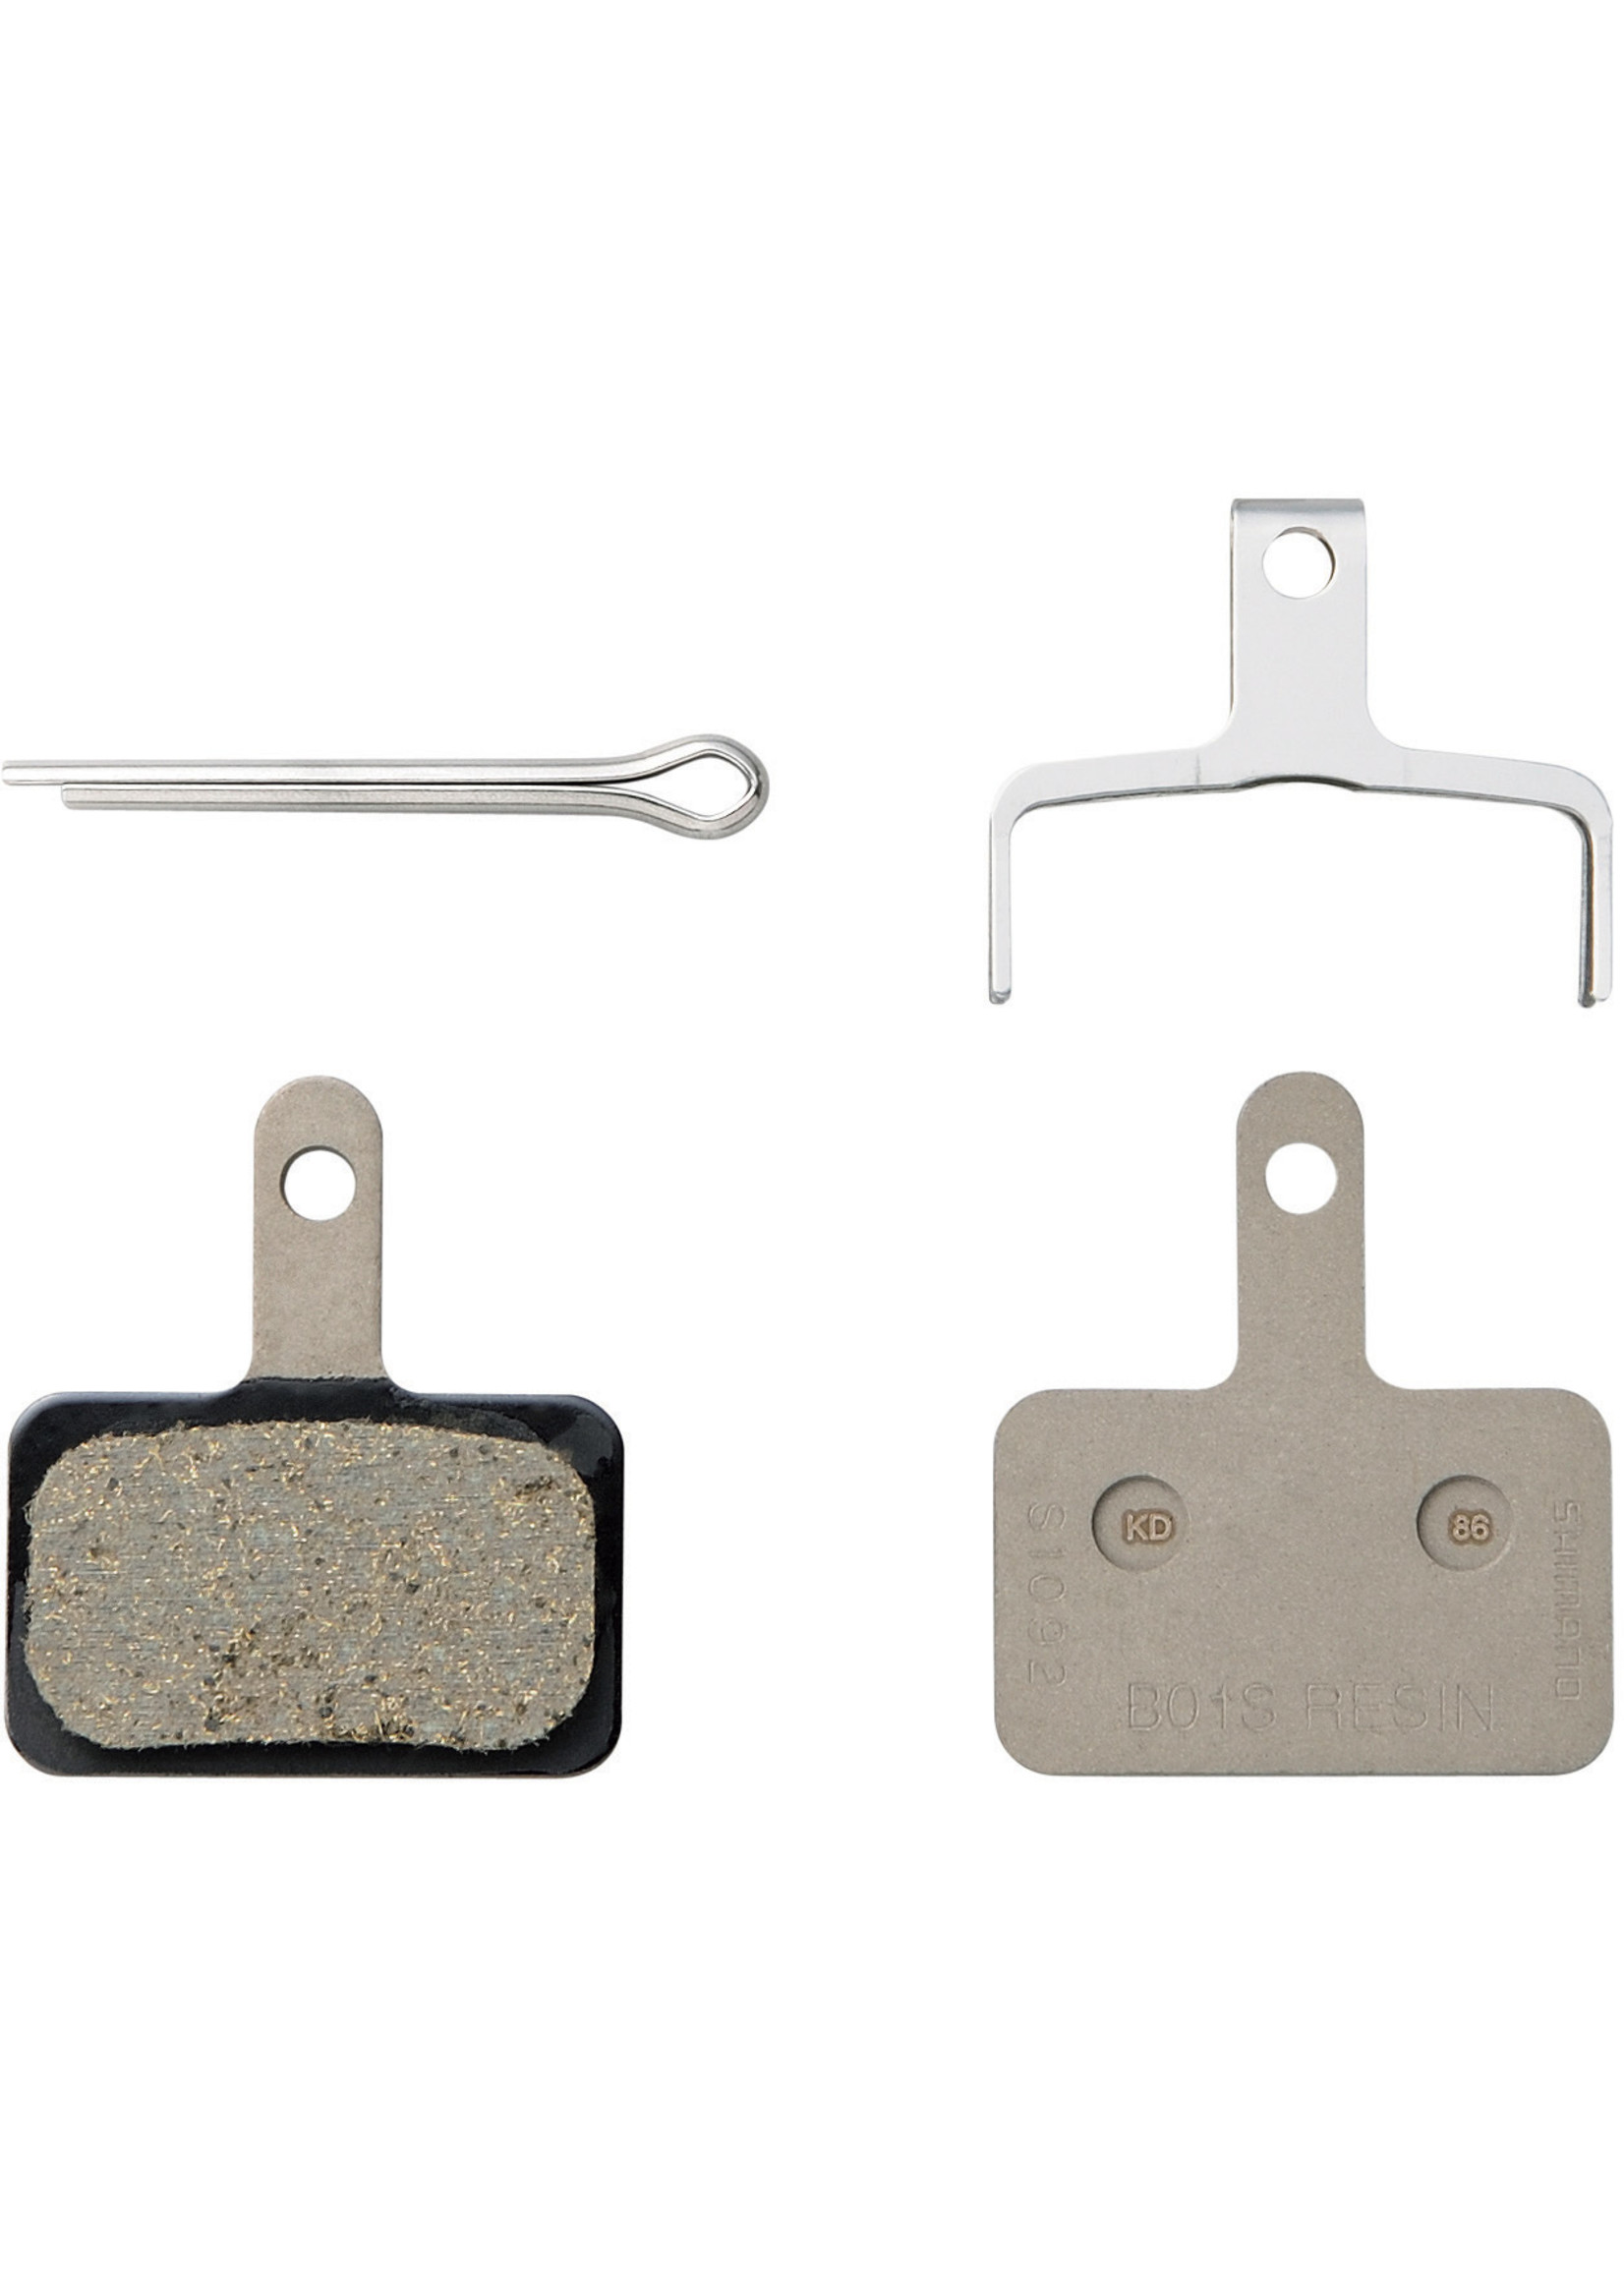 Shimano Spares B01S disc brake pads and spring, steel backed, resin